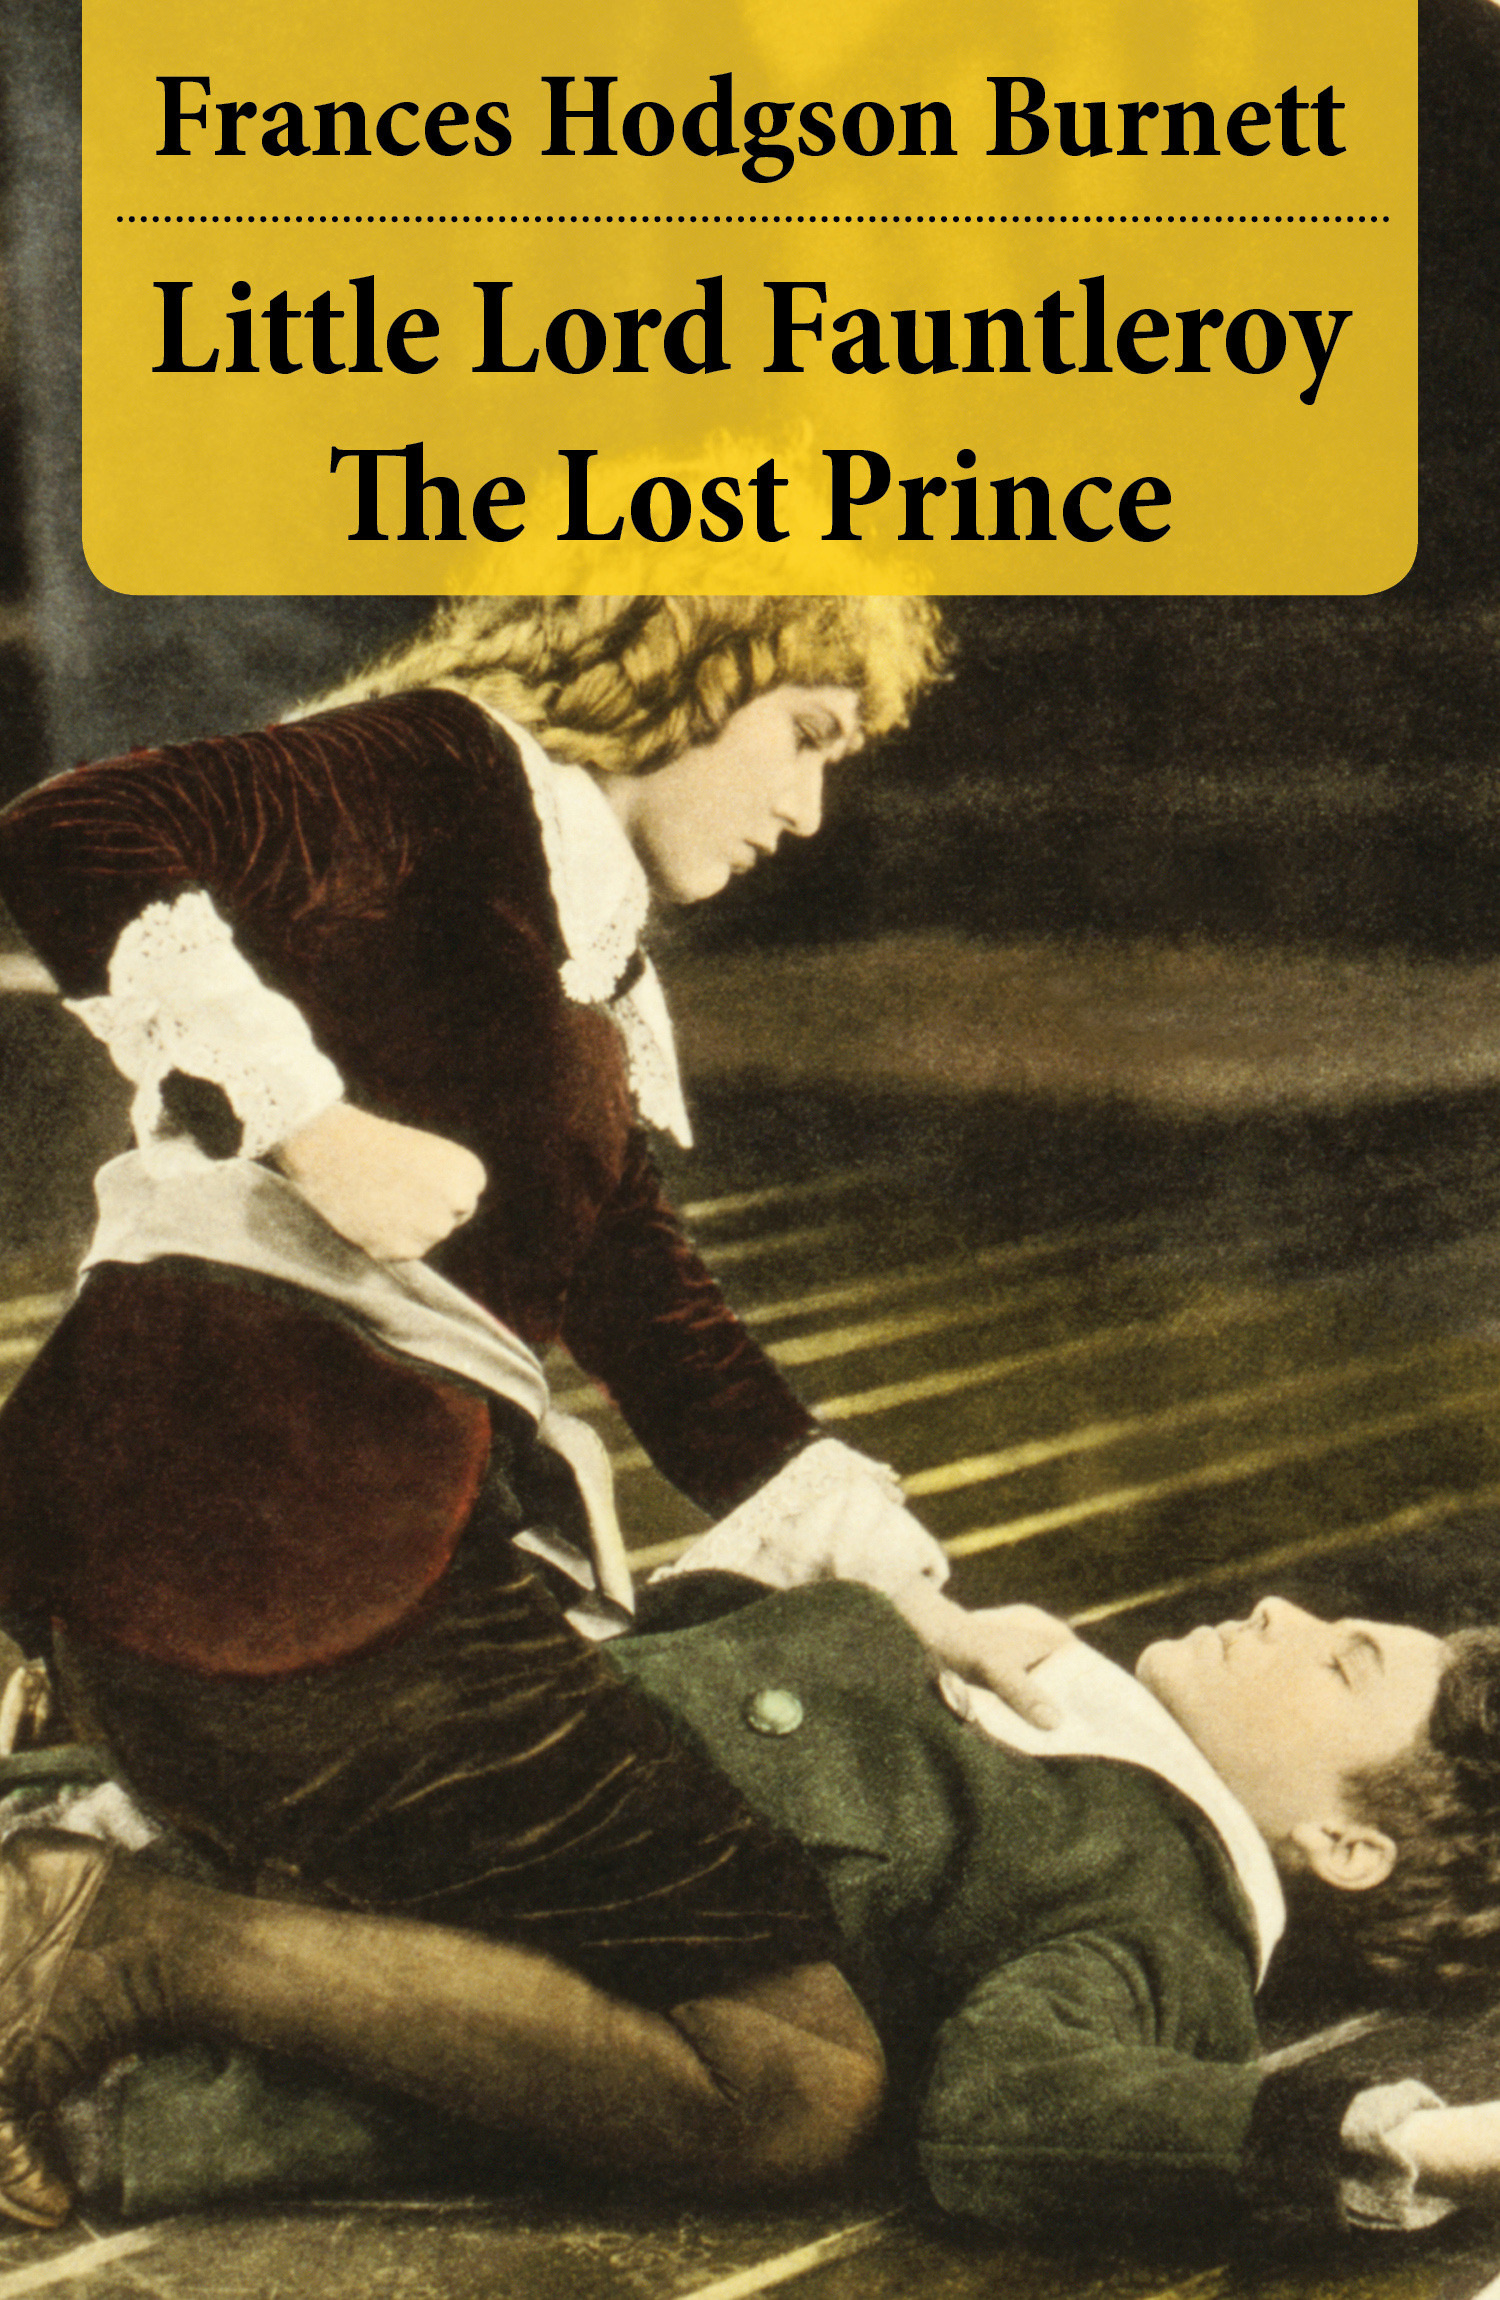 Little lord Fauntleroy ; the lost prince (2 unabridged classics in 1 ebook)